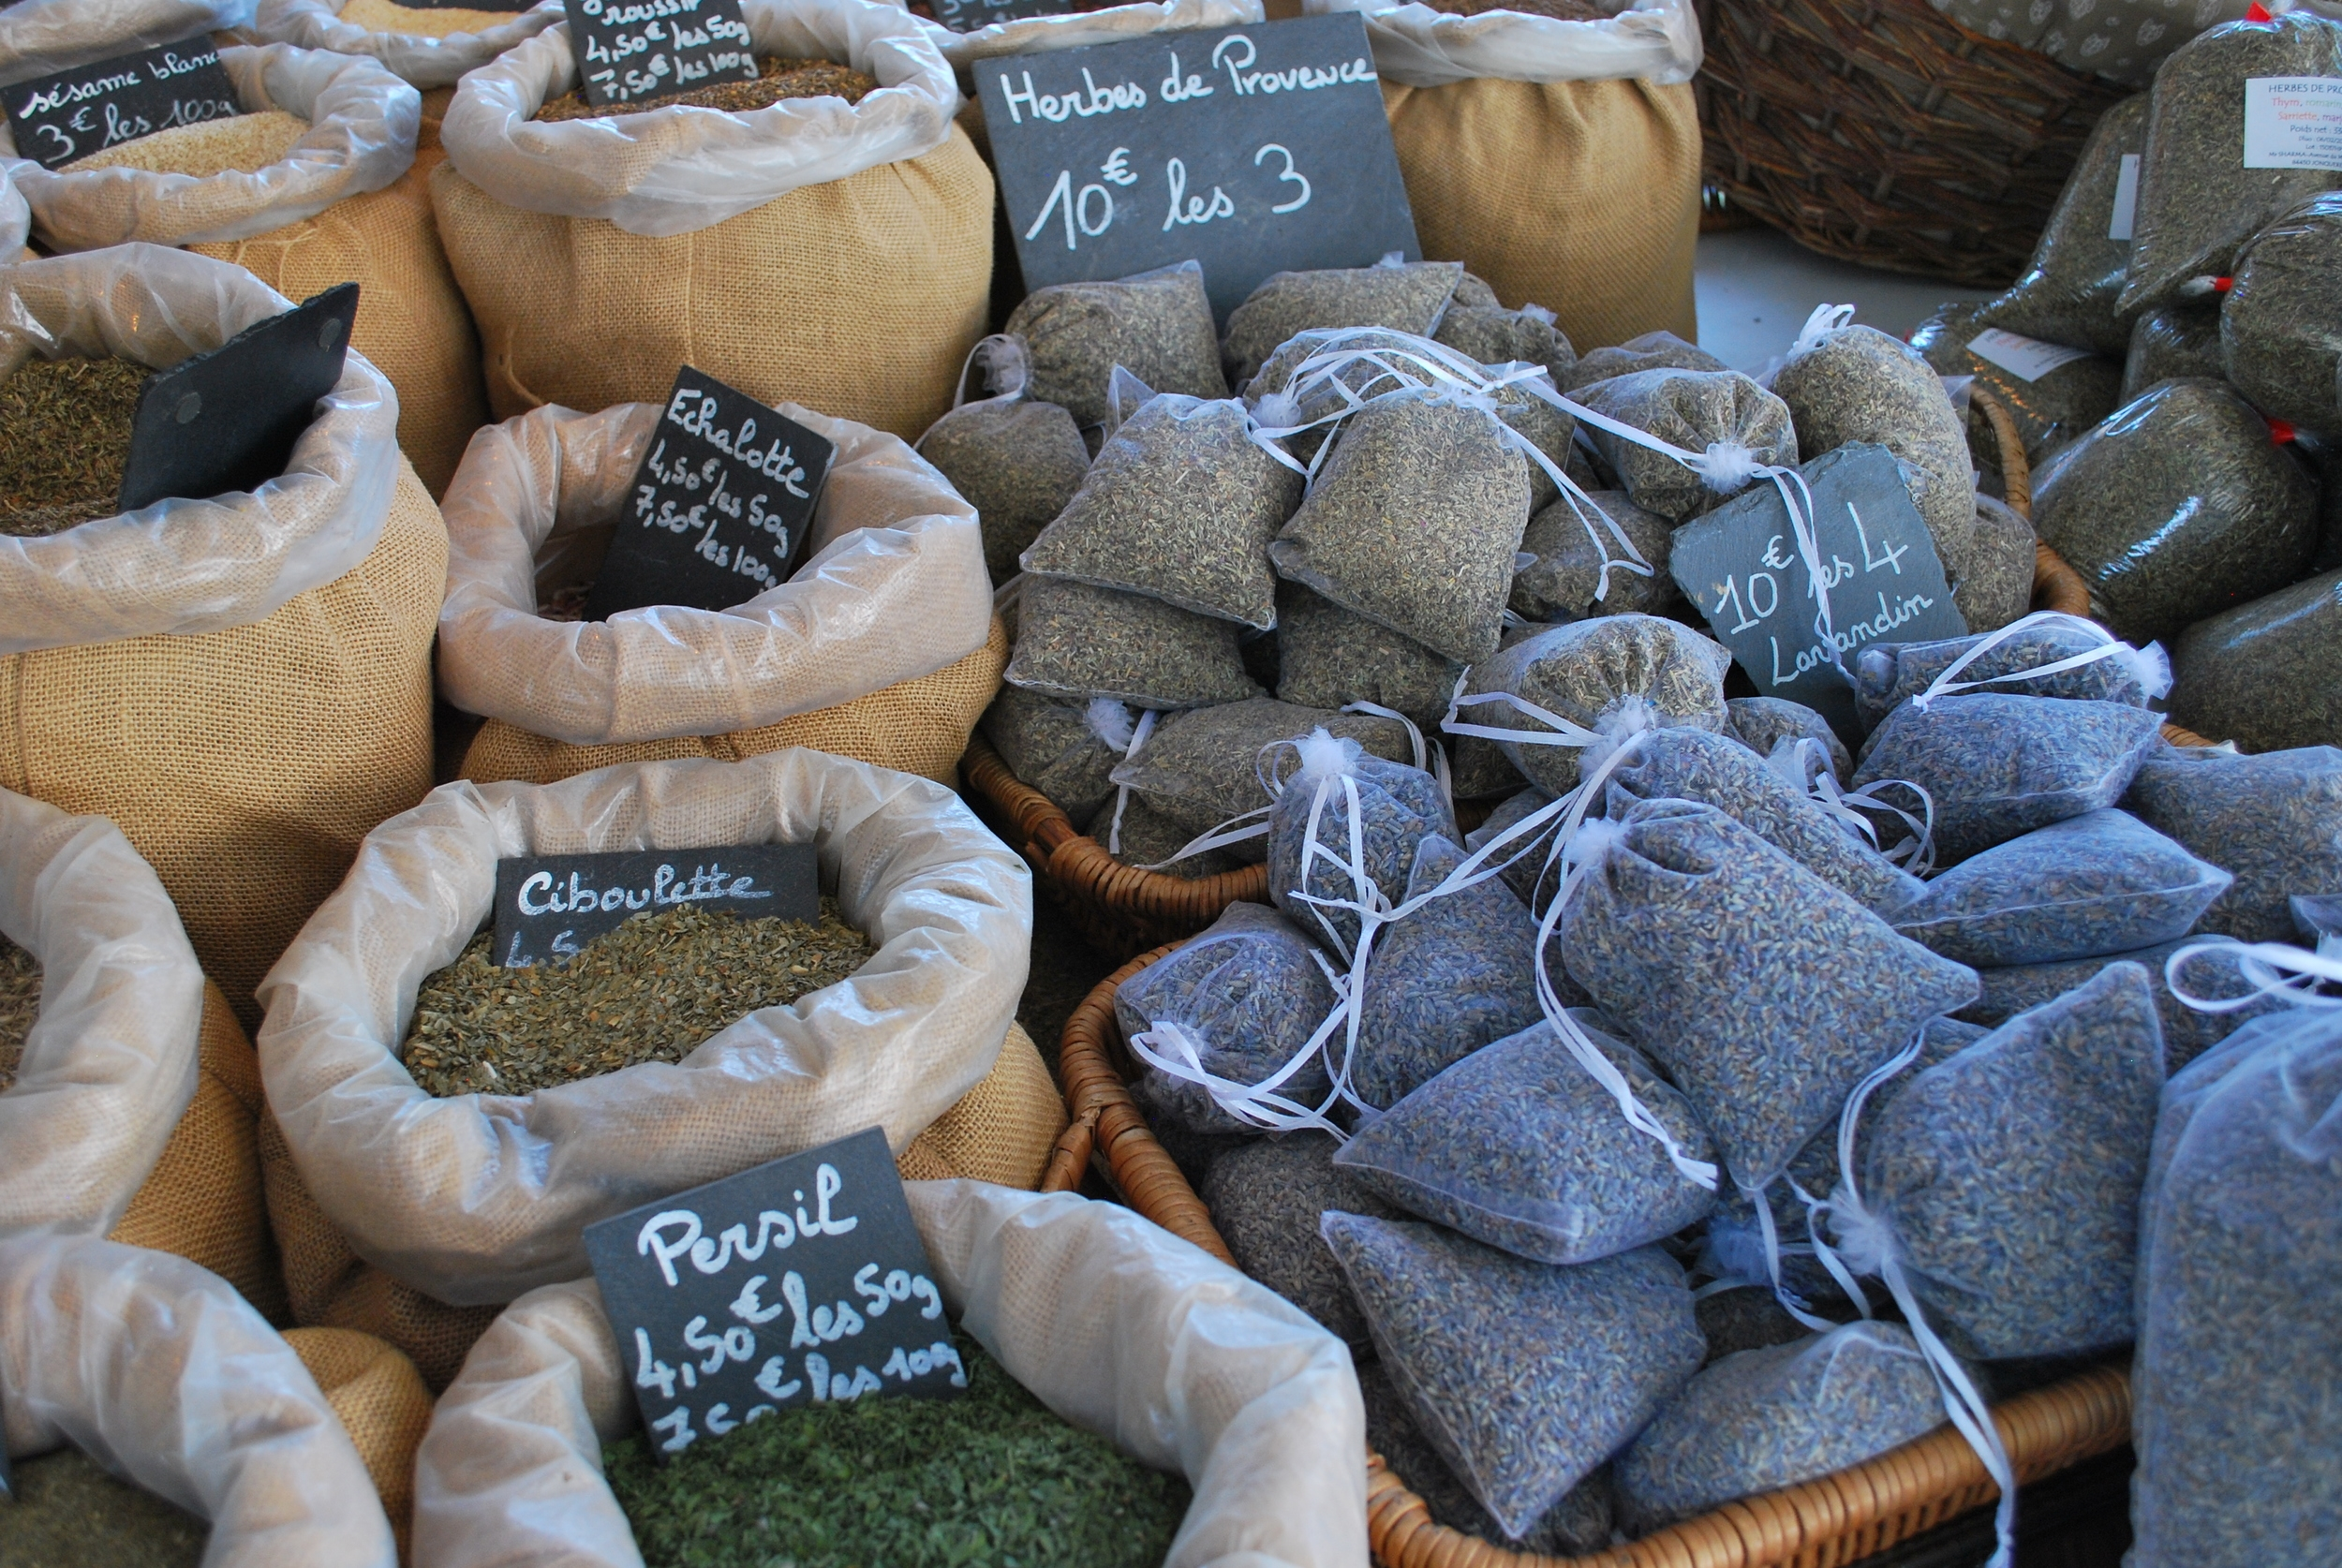 Lavender For Sale at Friday Market in Eygalieres